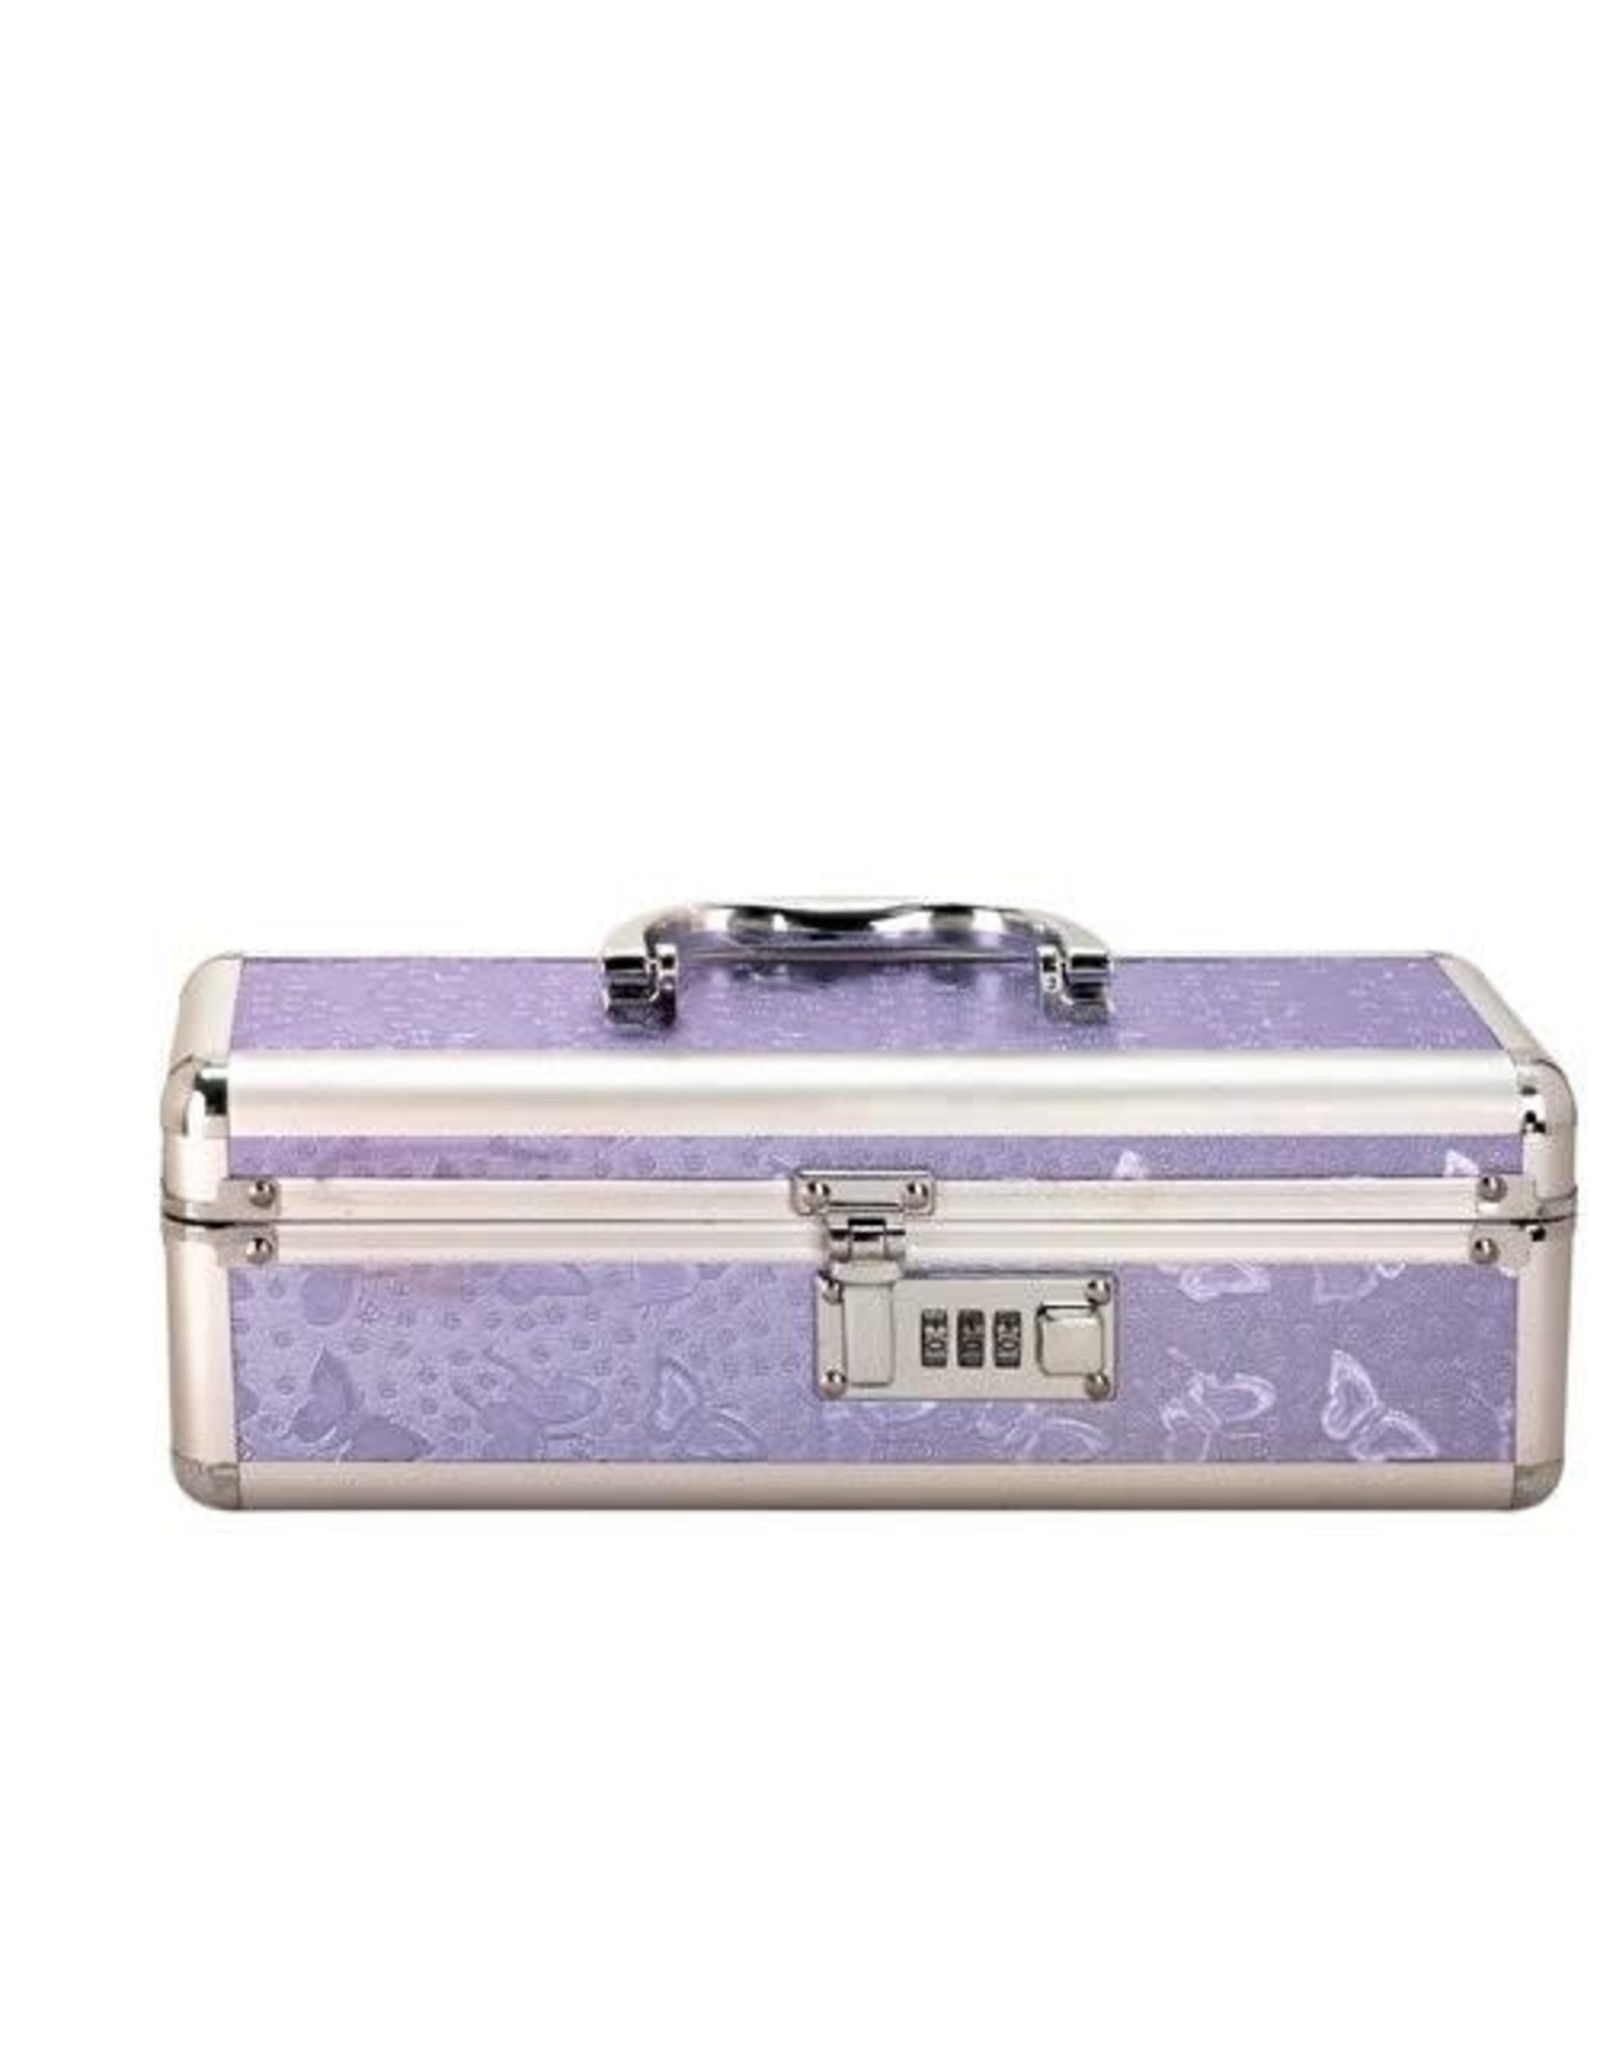 LOCKABLE VIBRATOR TOY CHEST - PURPLE